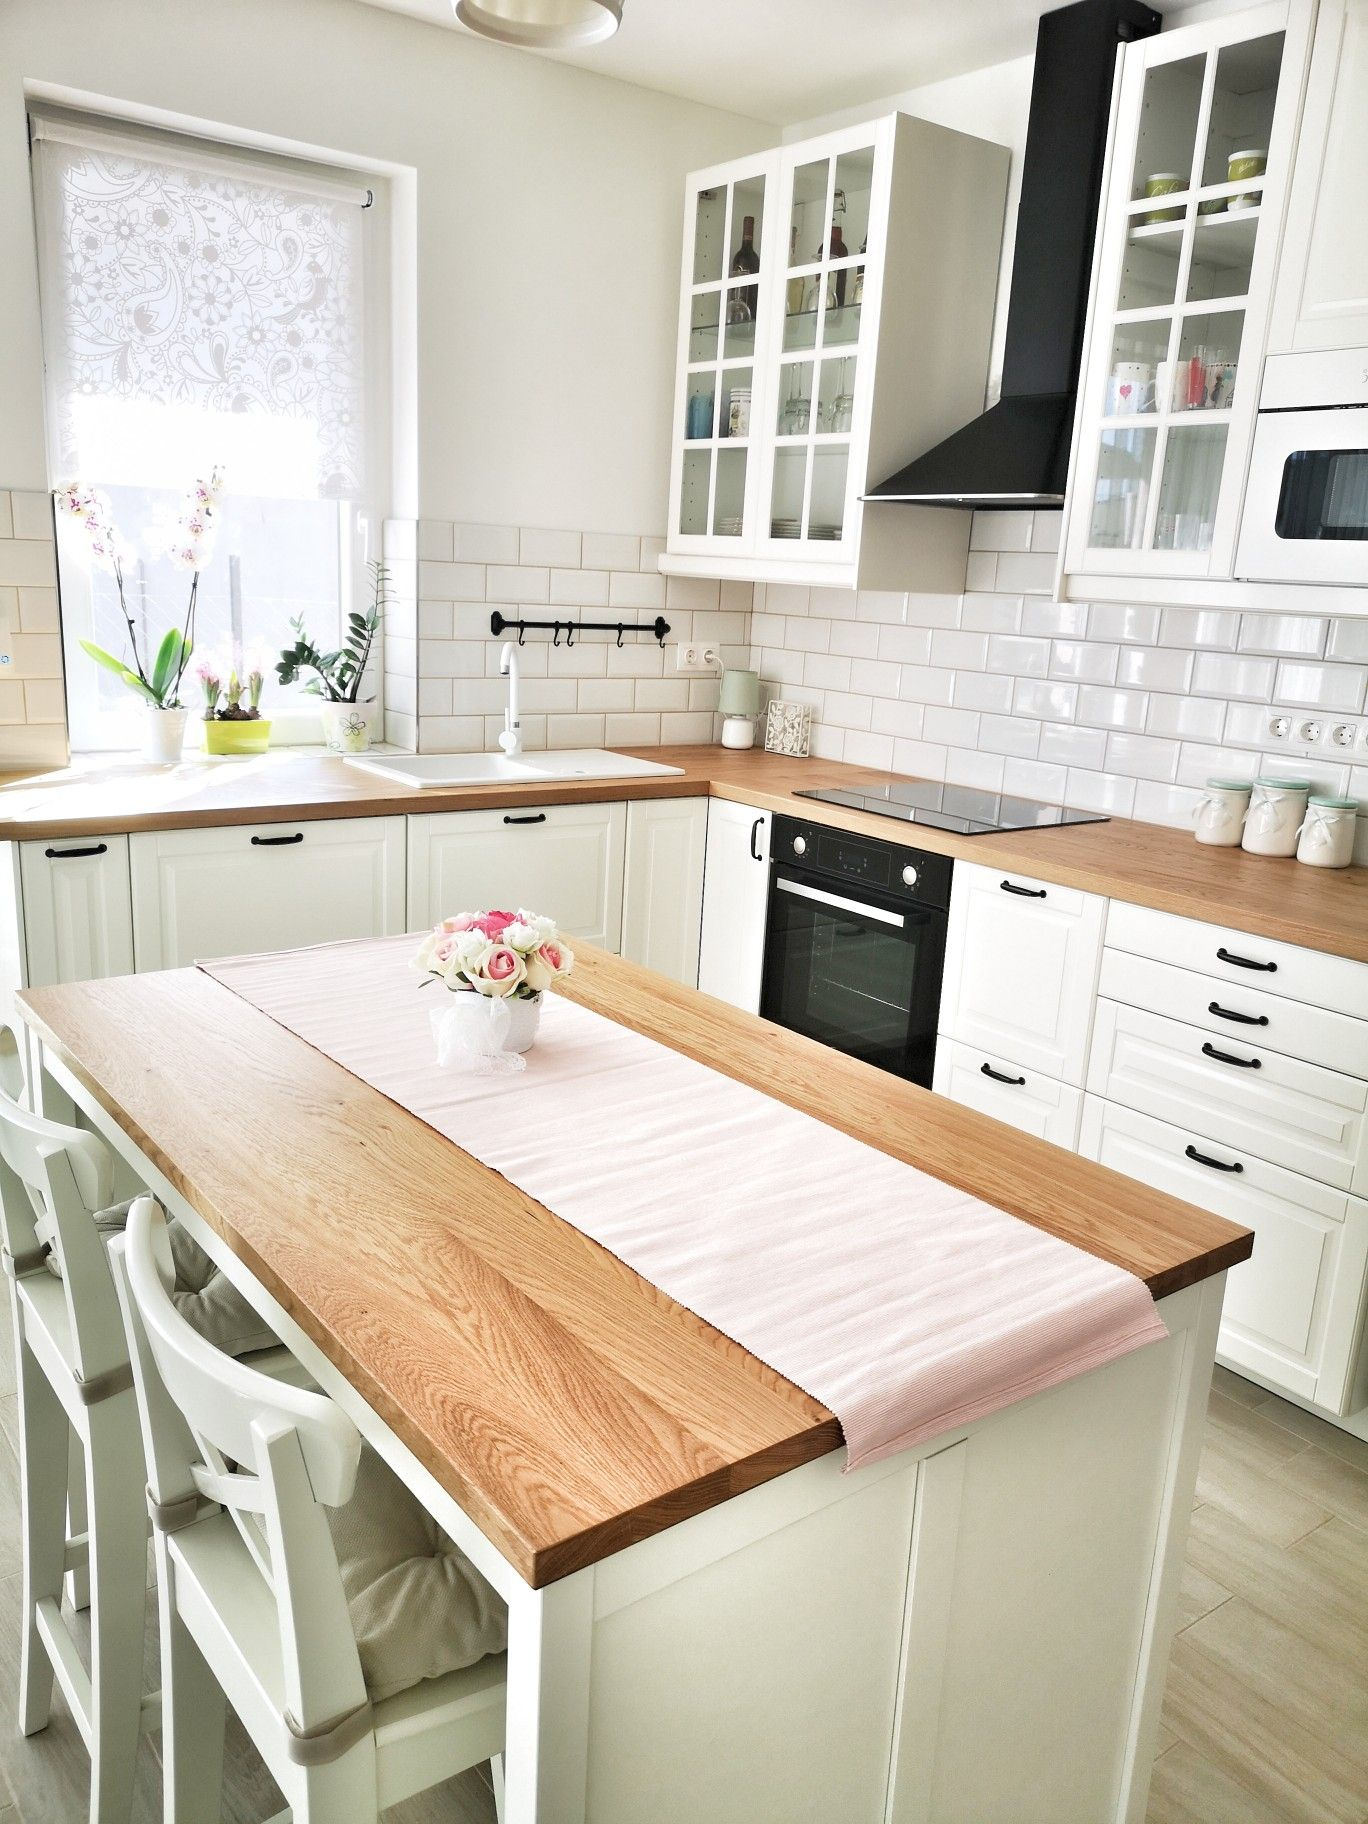 Küche Bodbyn Weiß My White Bodbyn Kitchen 💓 | Kitchen Design, Kitchen Inspirations, Ikea Bodbyn Kitchen